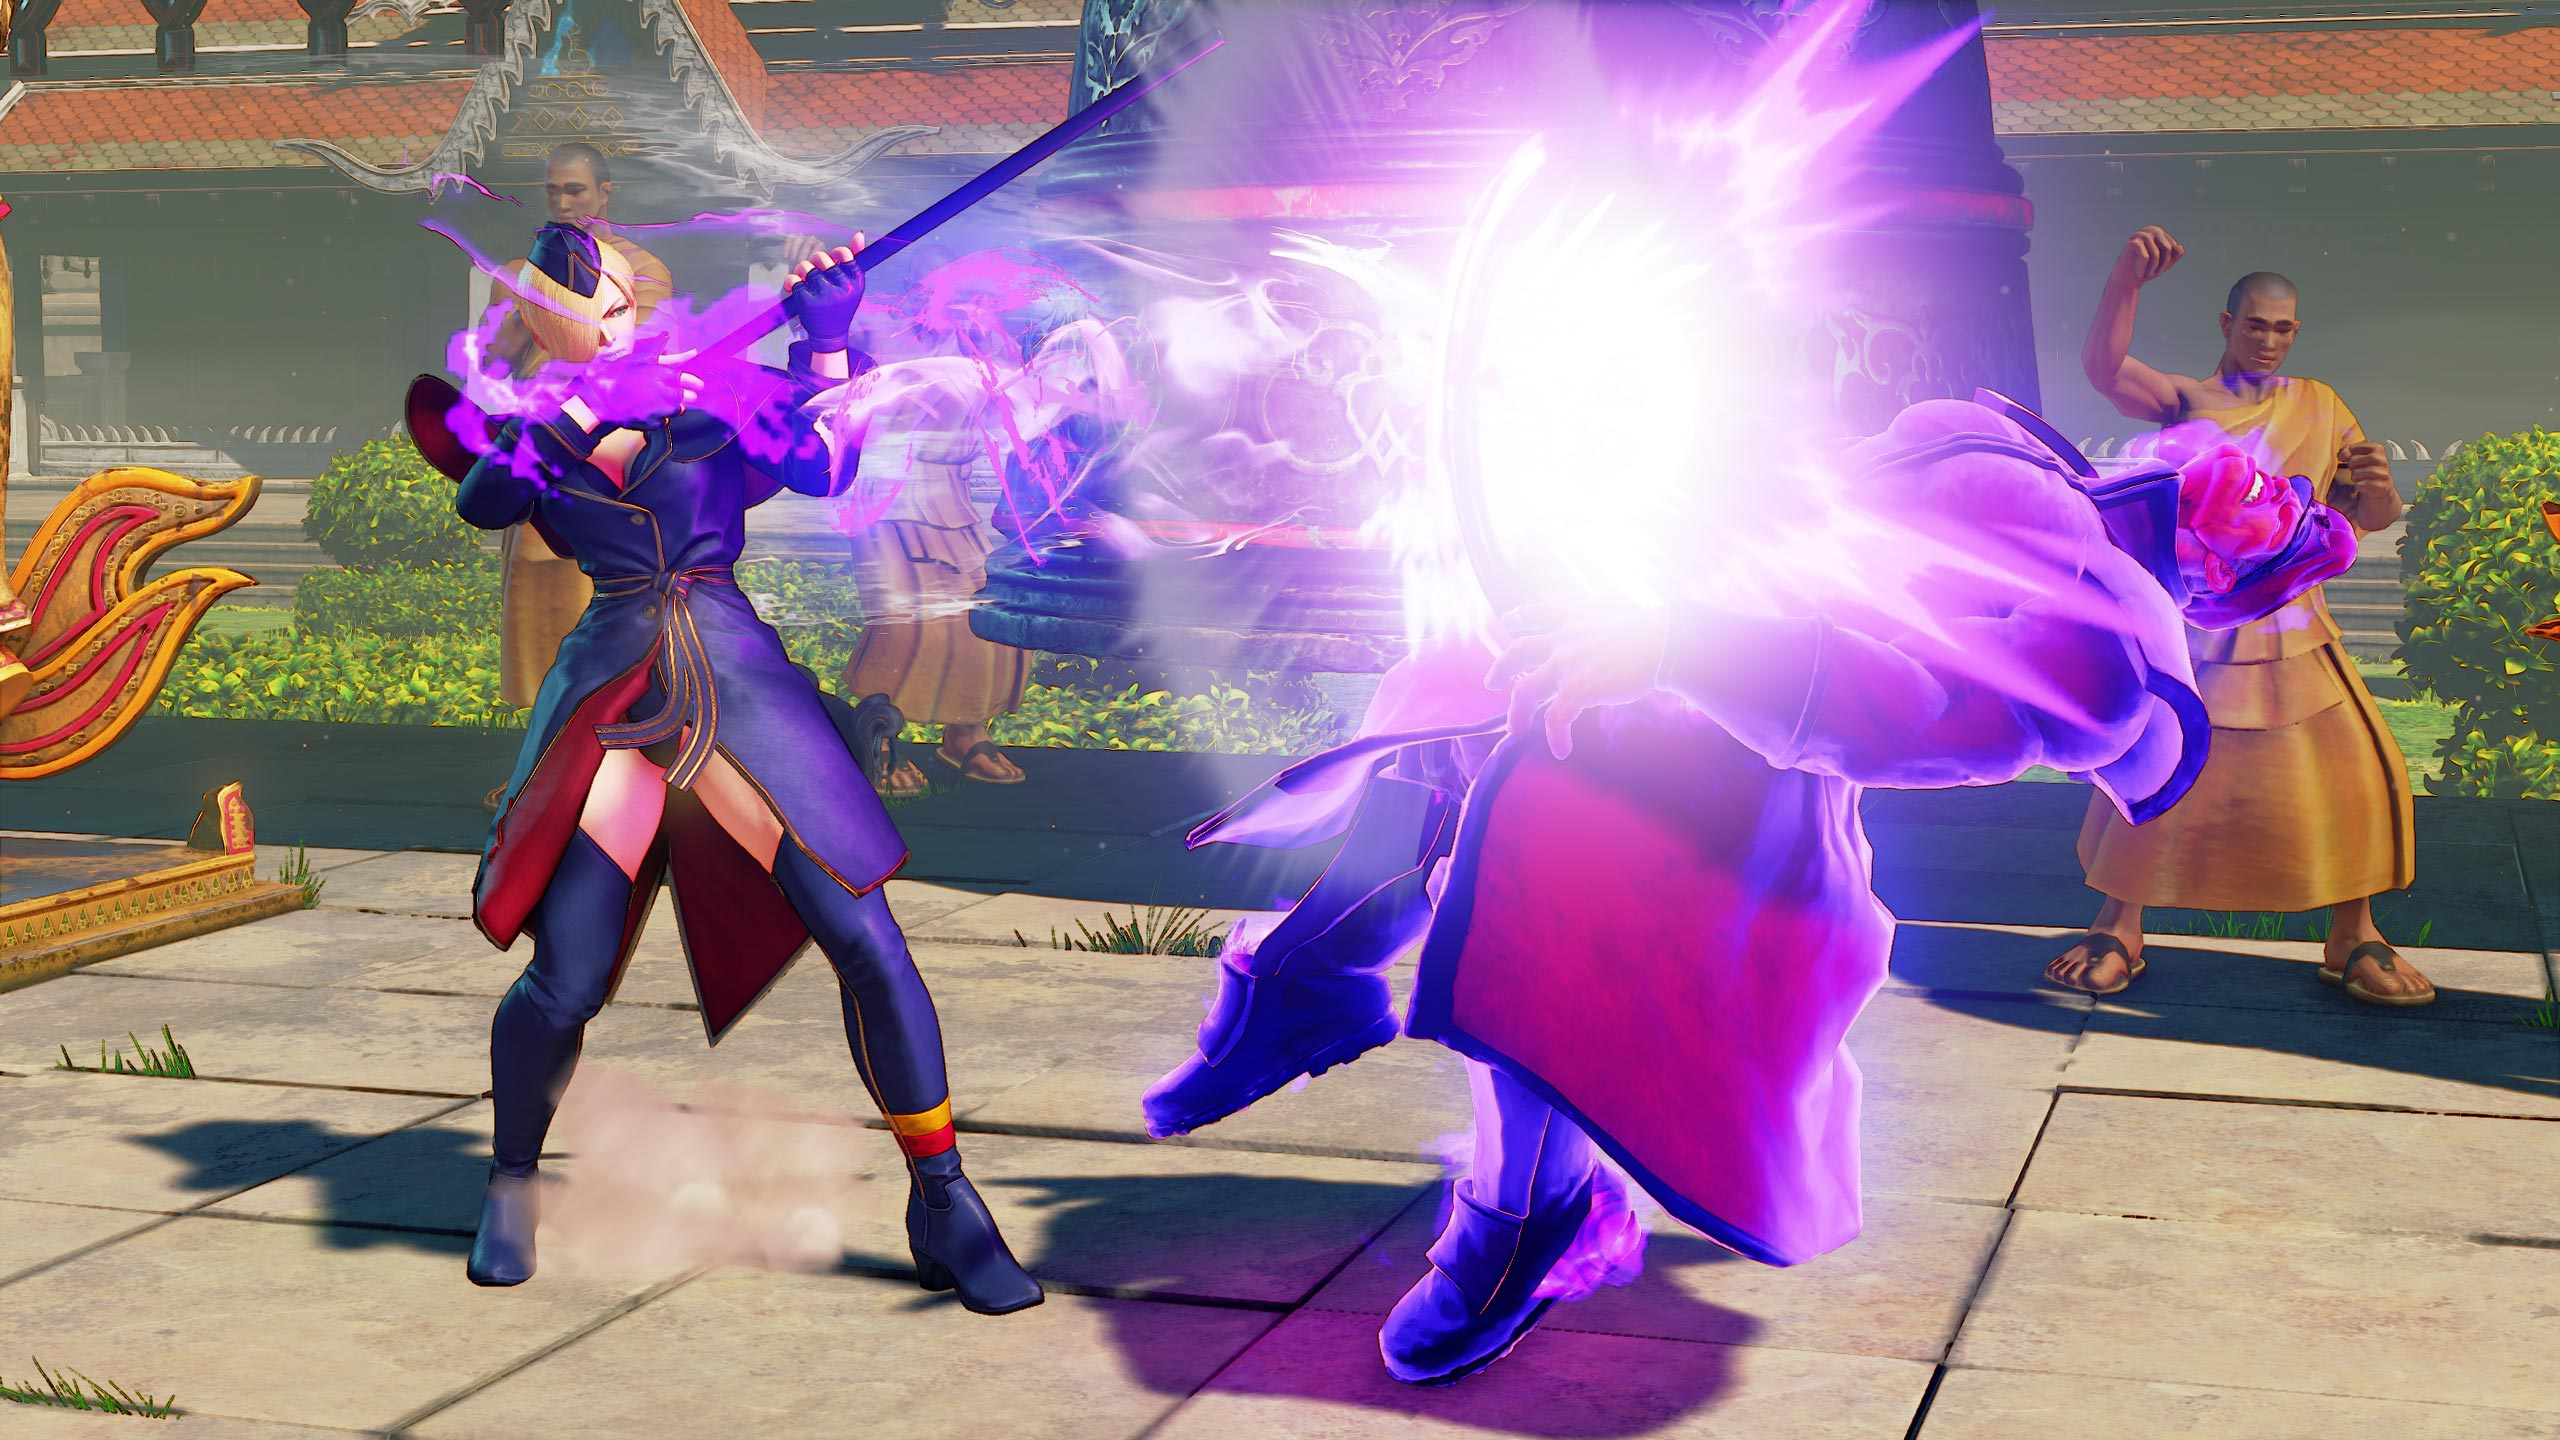 Falke in Street Fighter 5: Arcade Edition 4 out of 15 image gallery